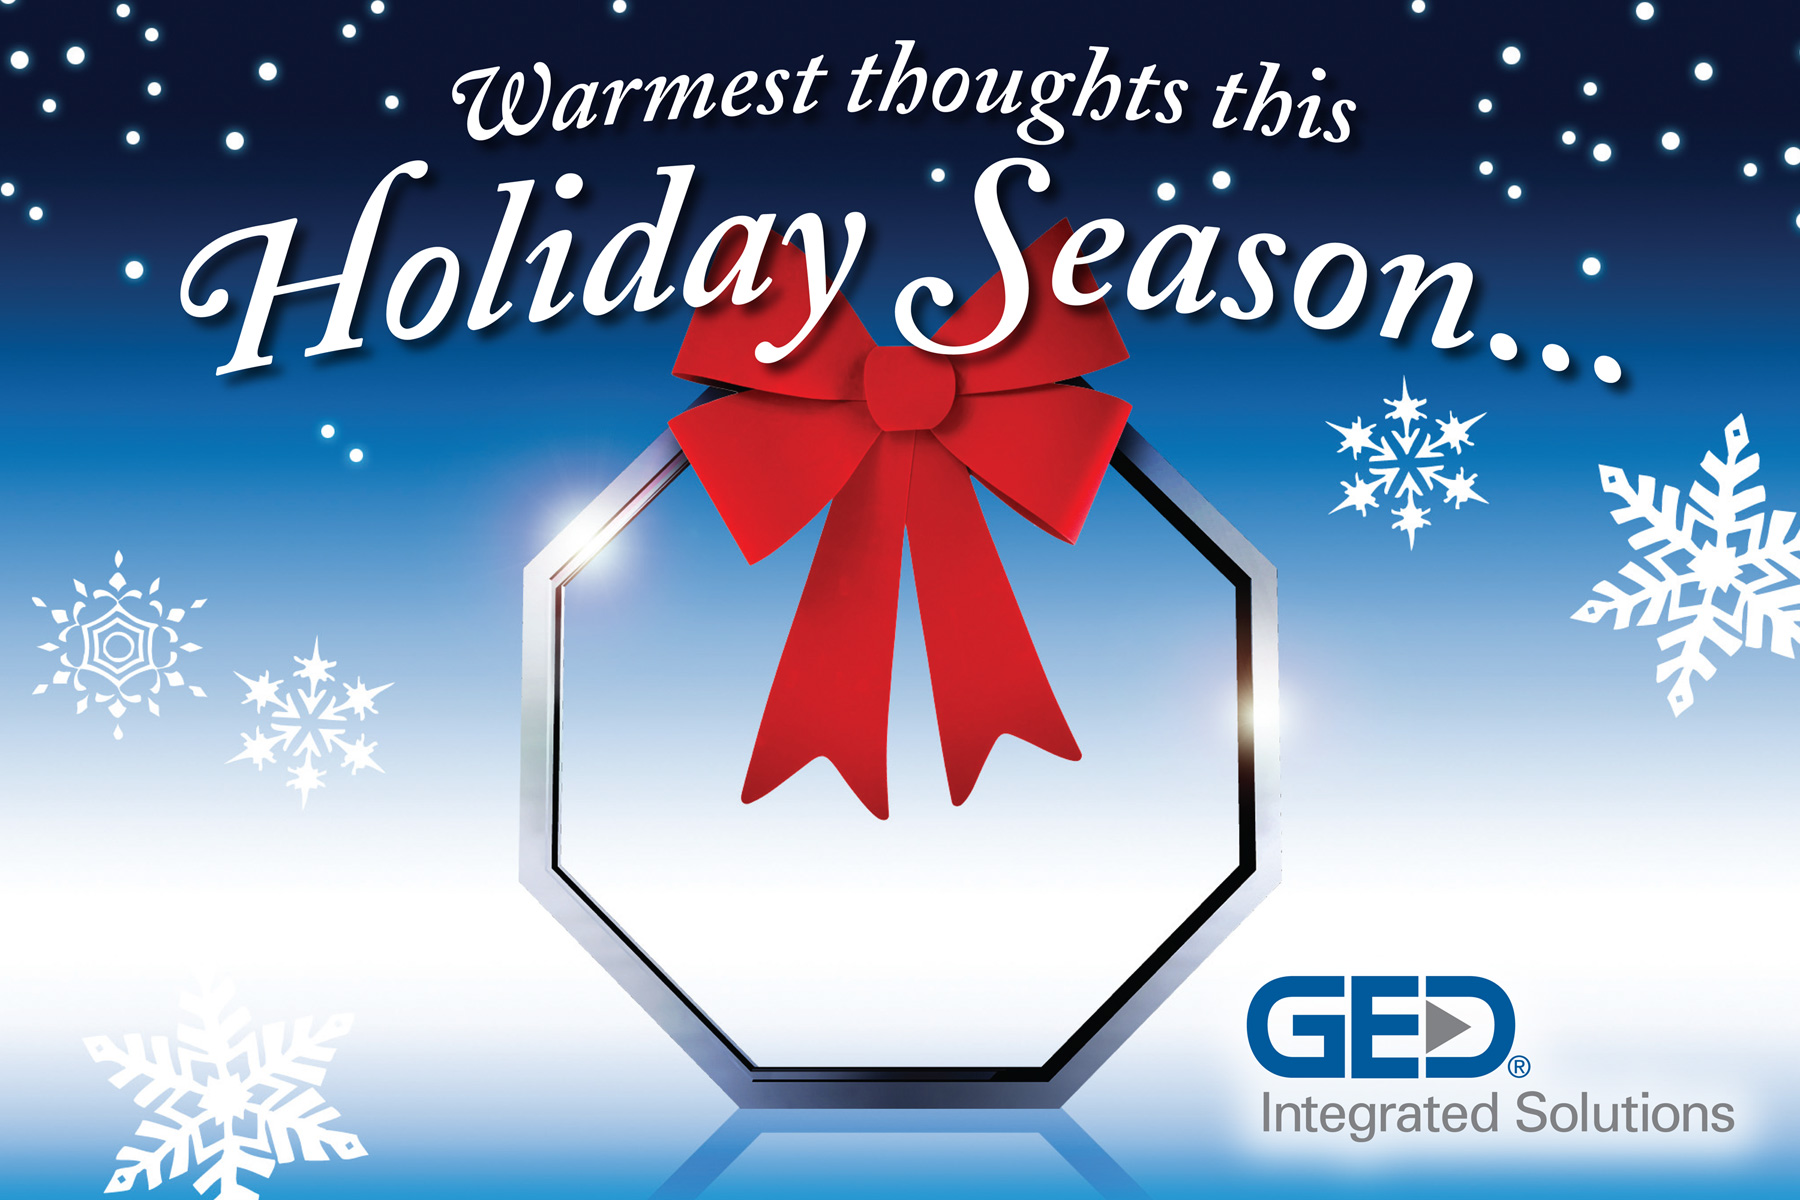 GED_Holiday_1_1800x1200